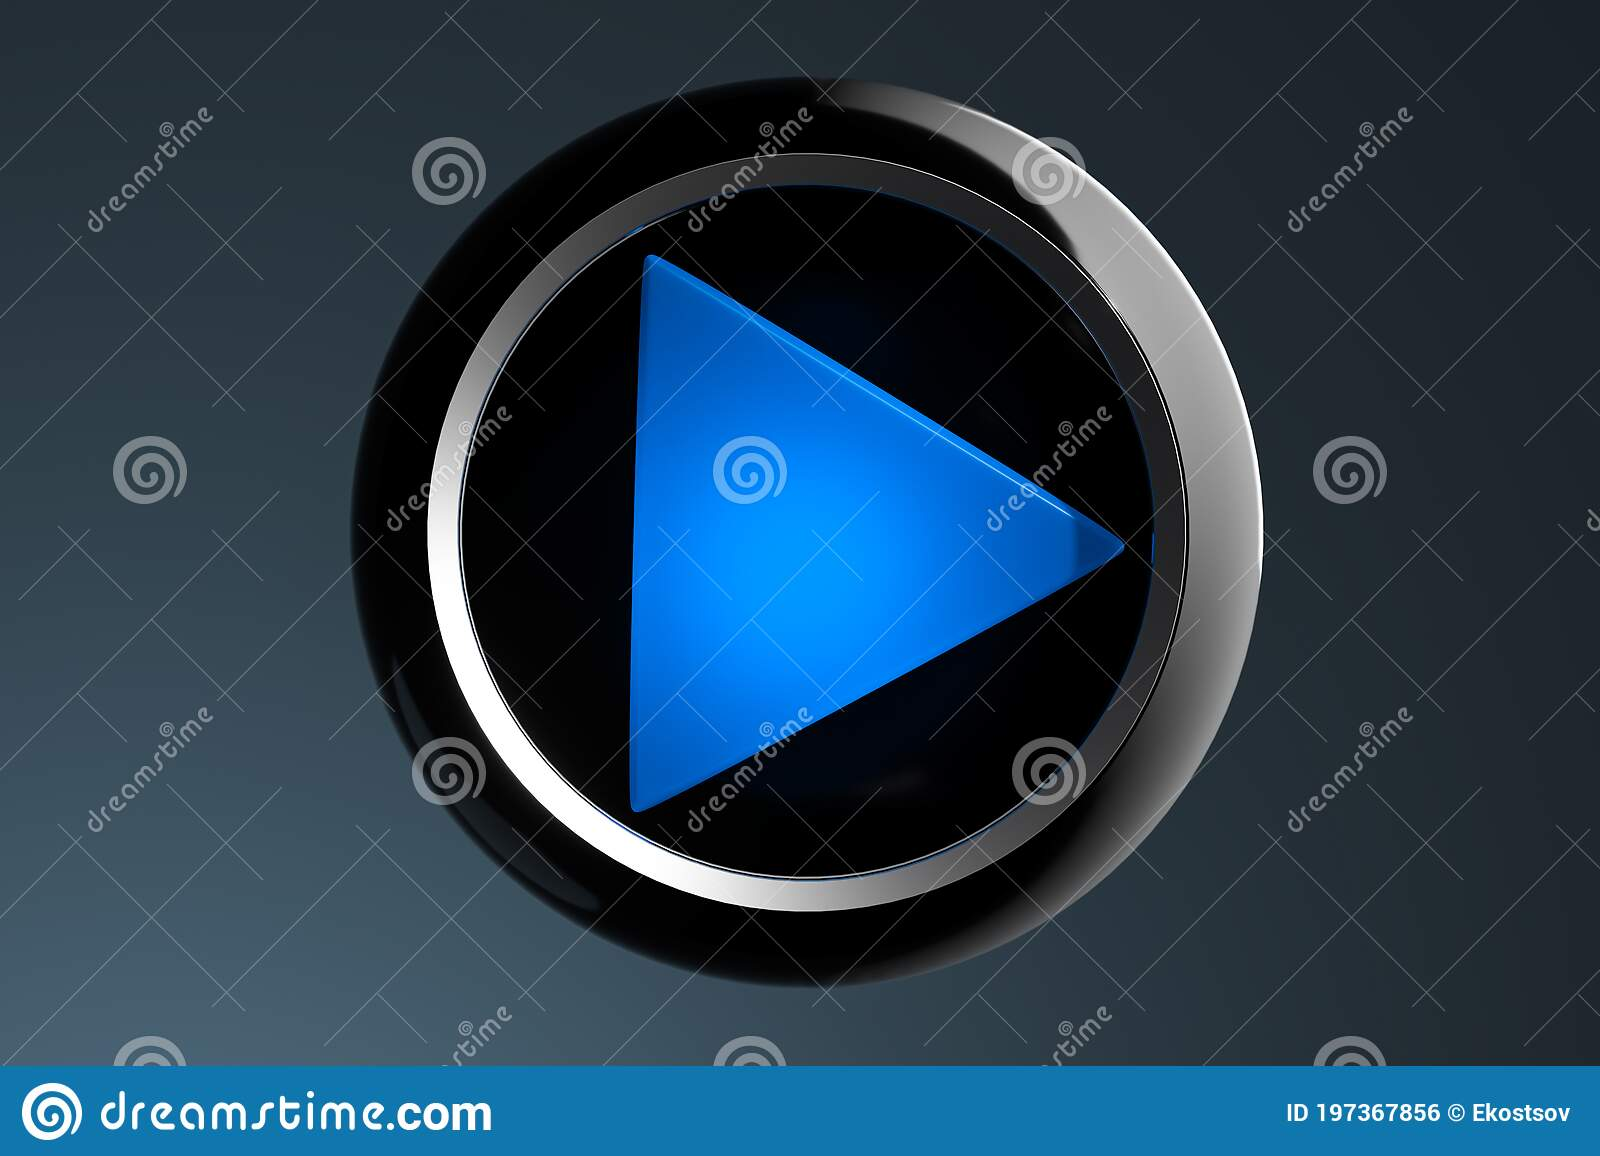 Bue Play Movie Icon On Dark Background. Cinema Projector. Online App For  Watching TV Series And Movies. 3d Rendering Stock Illustration -  Illustration of home, isolated: 197367856